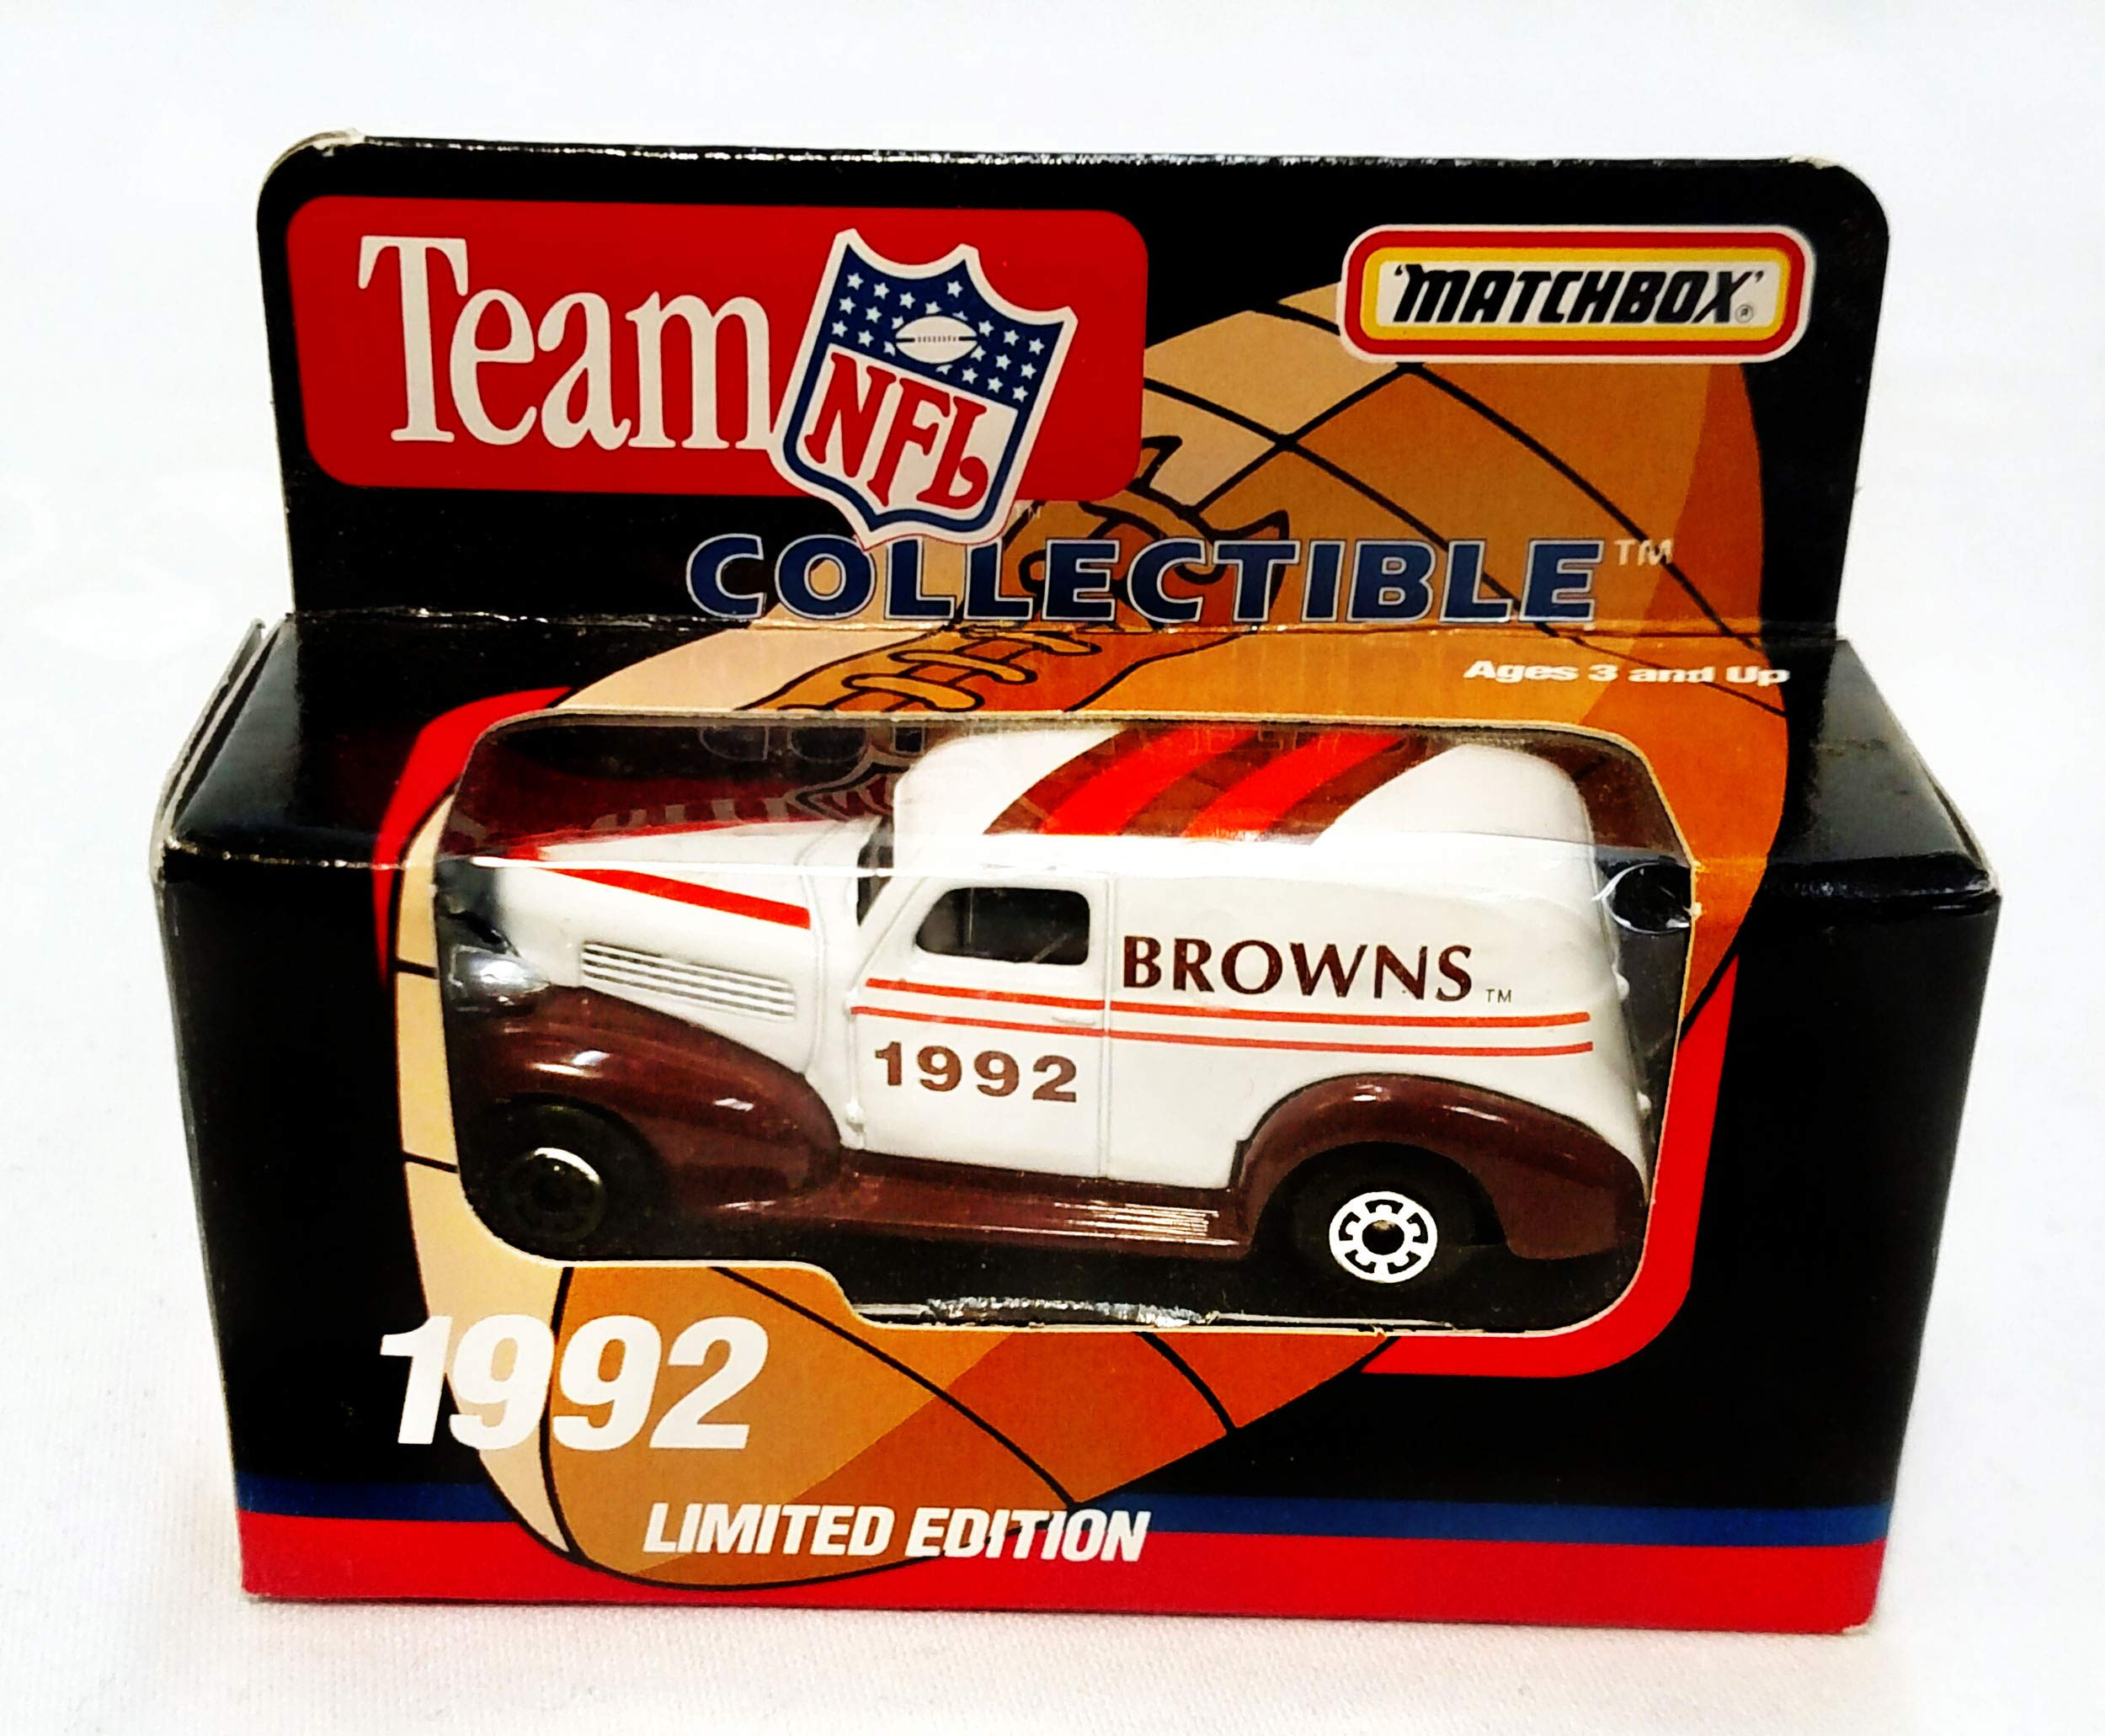 Cleveland Browns 1992 Limited Edition Matchbox Die Cast Collectible